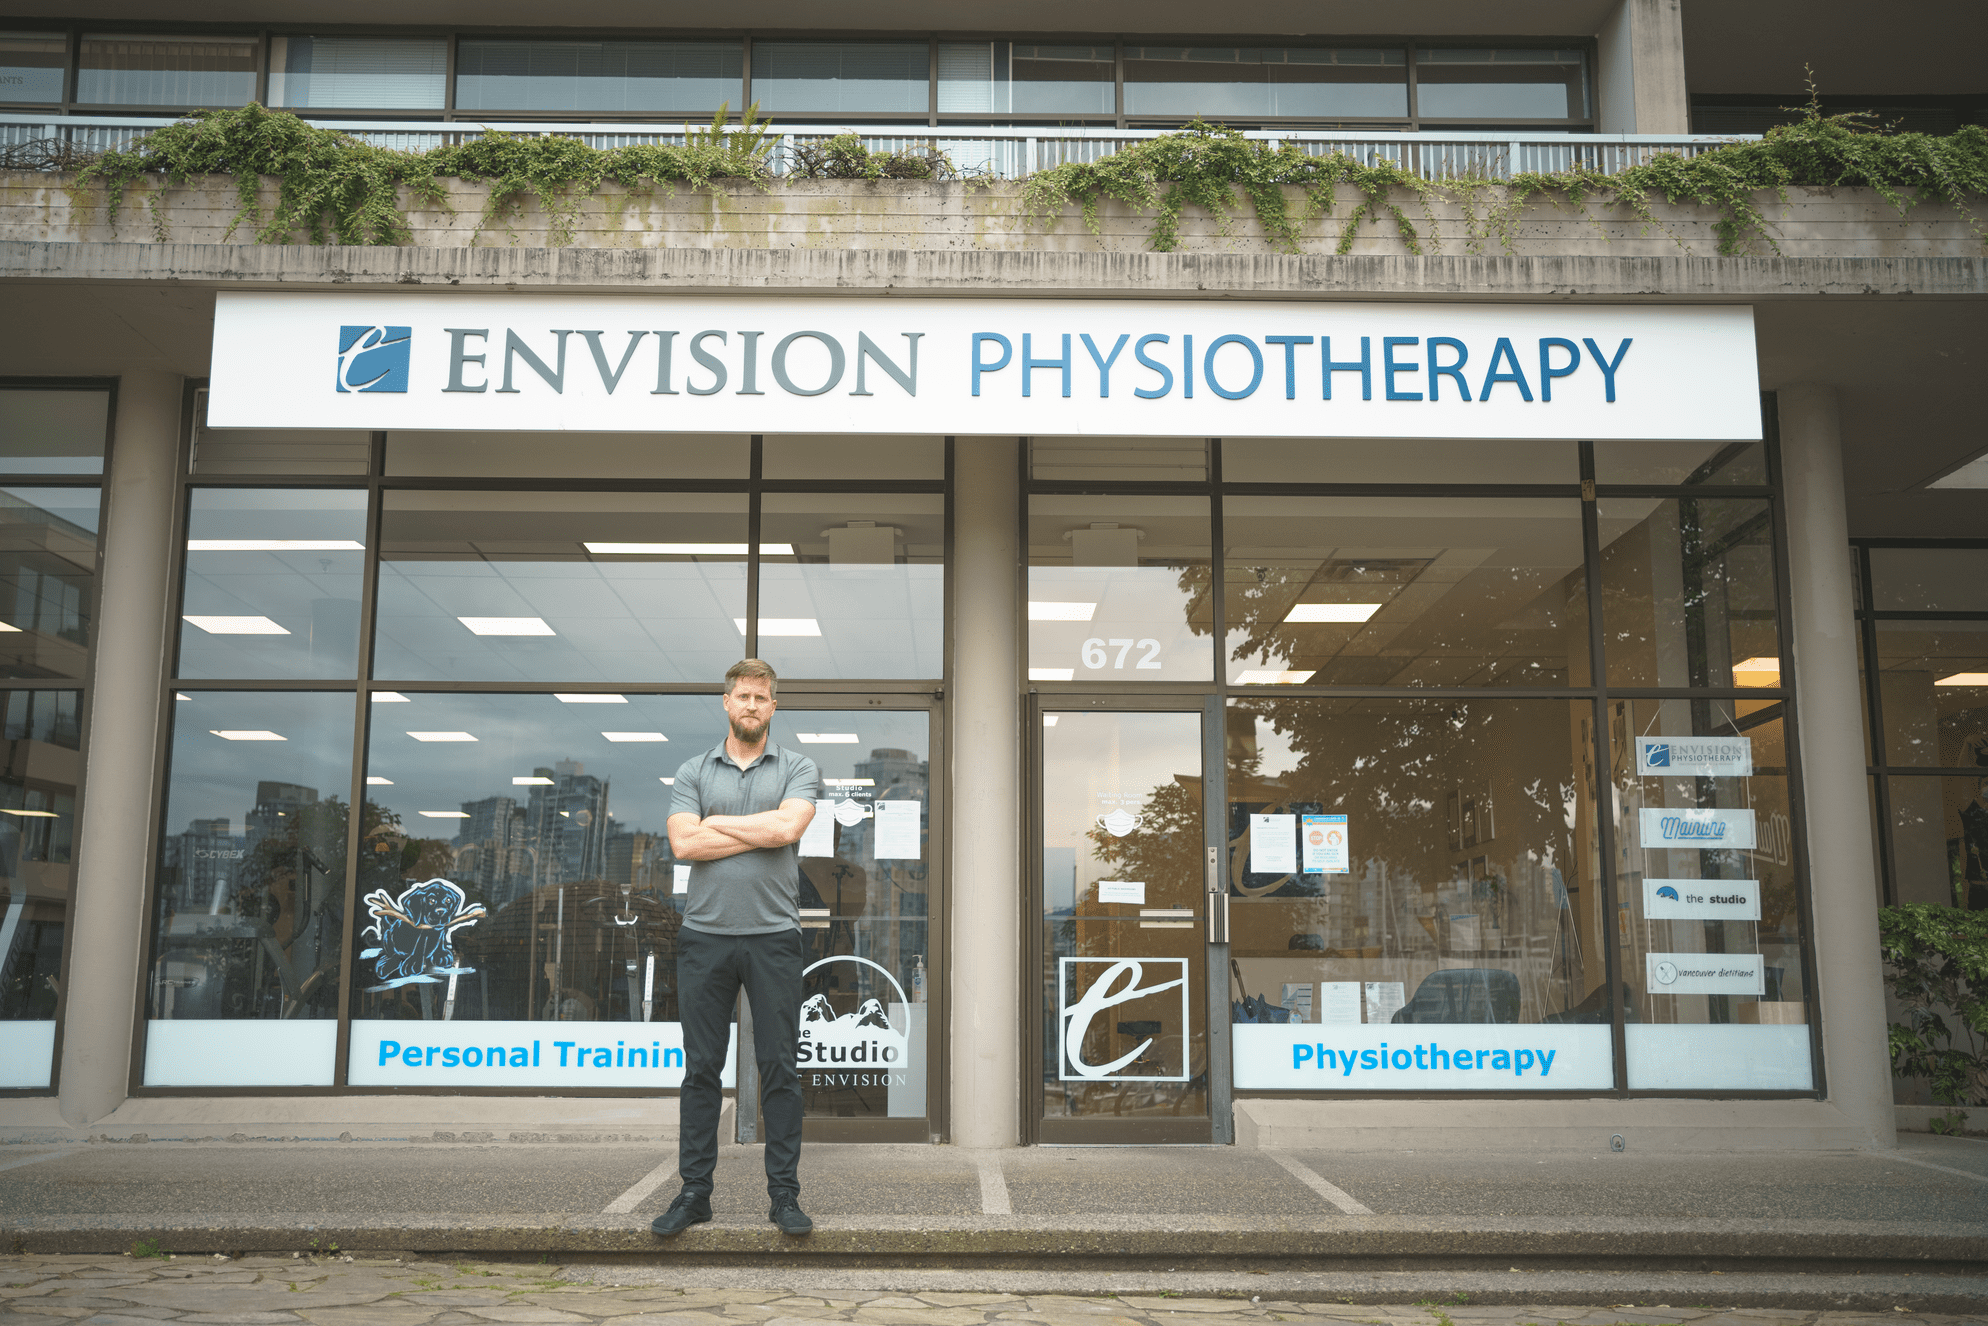 Envision Physio Office Entrance